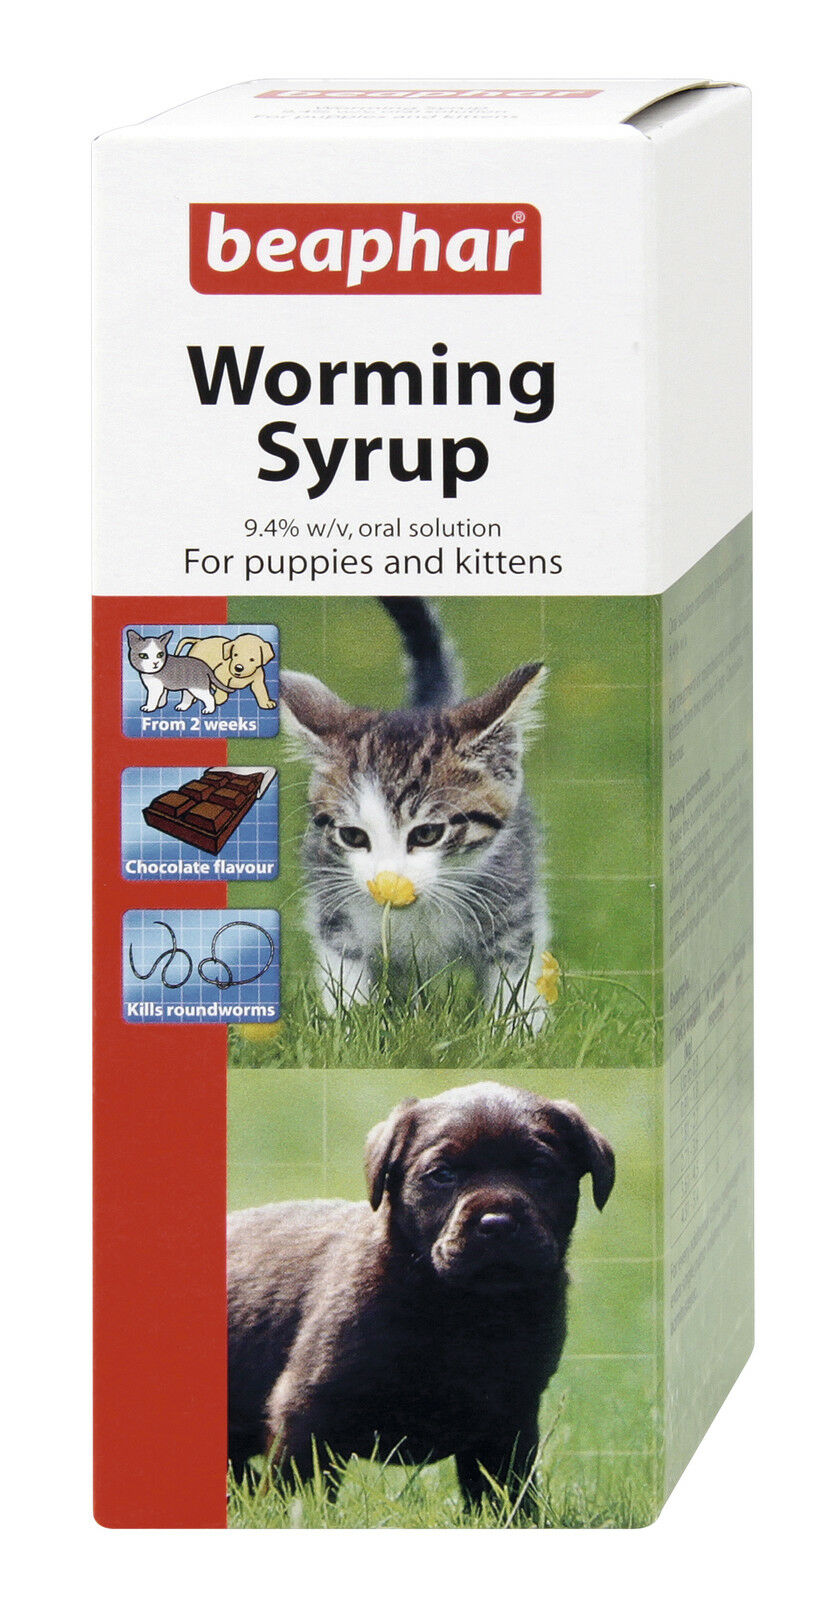 Beaphar Worming Syrup for Puppies Kittens Dogs Cats Worm Treatment